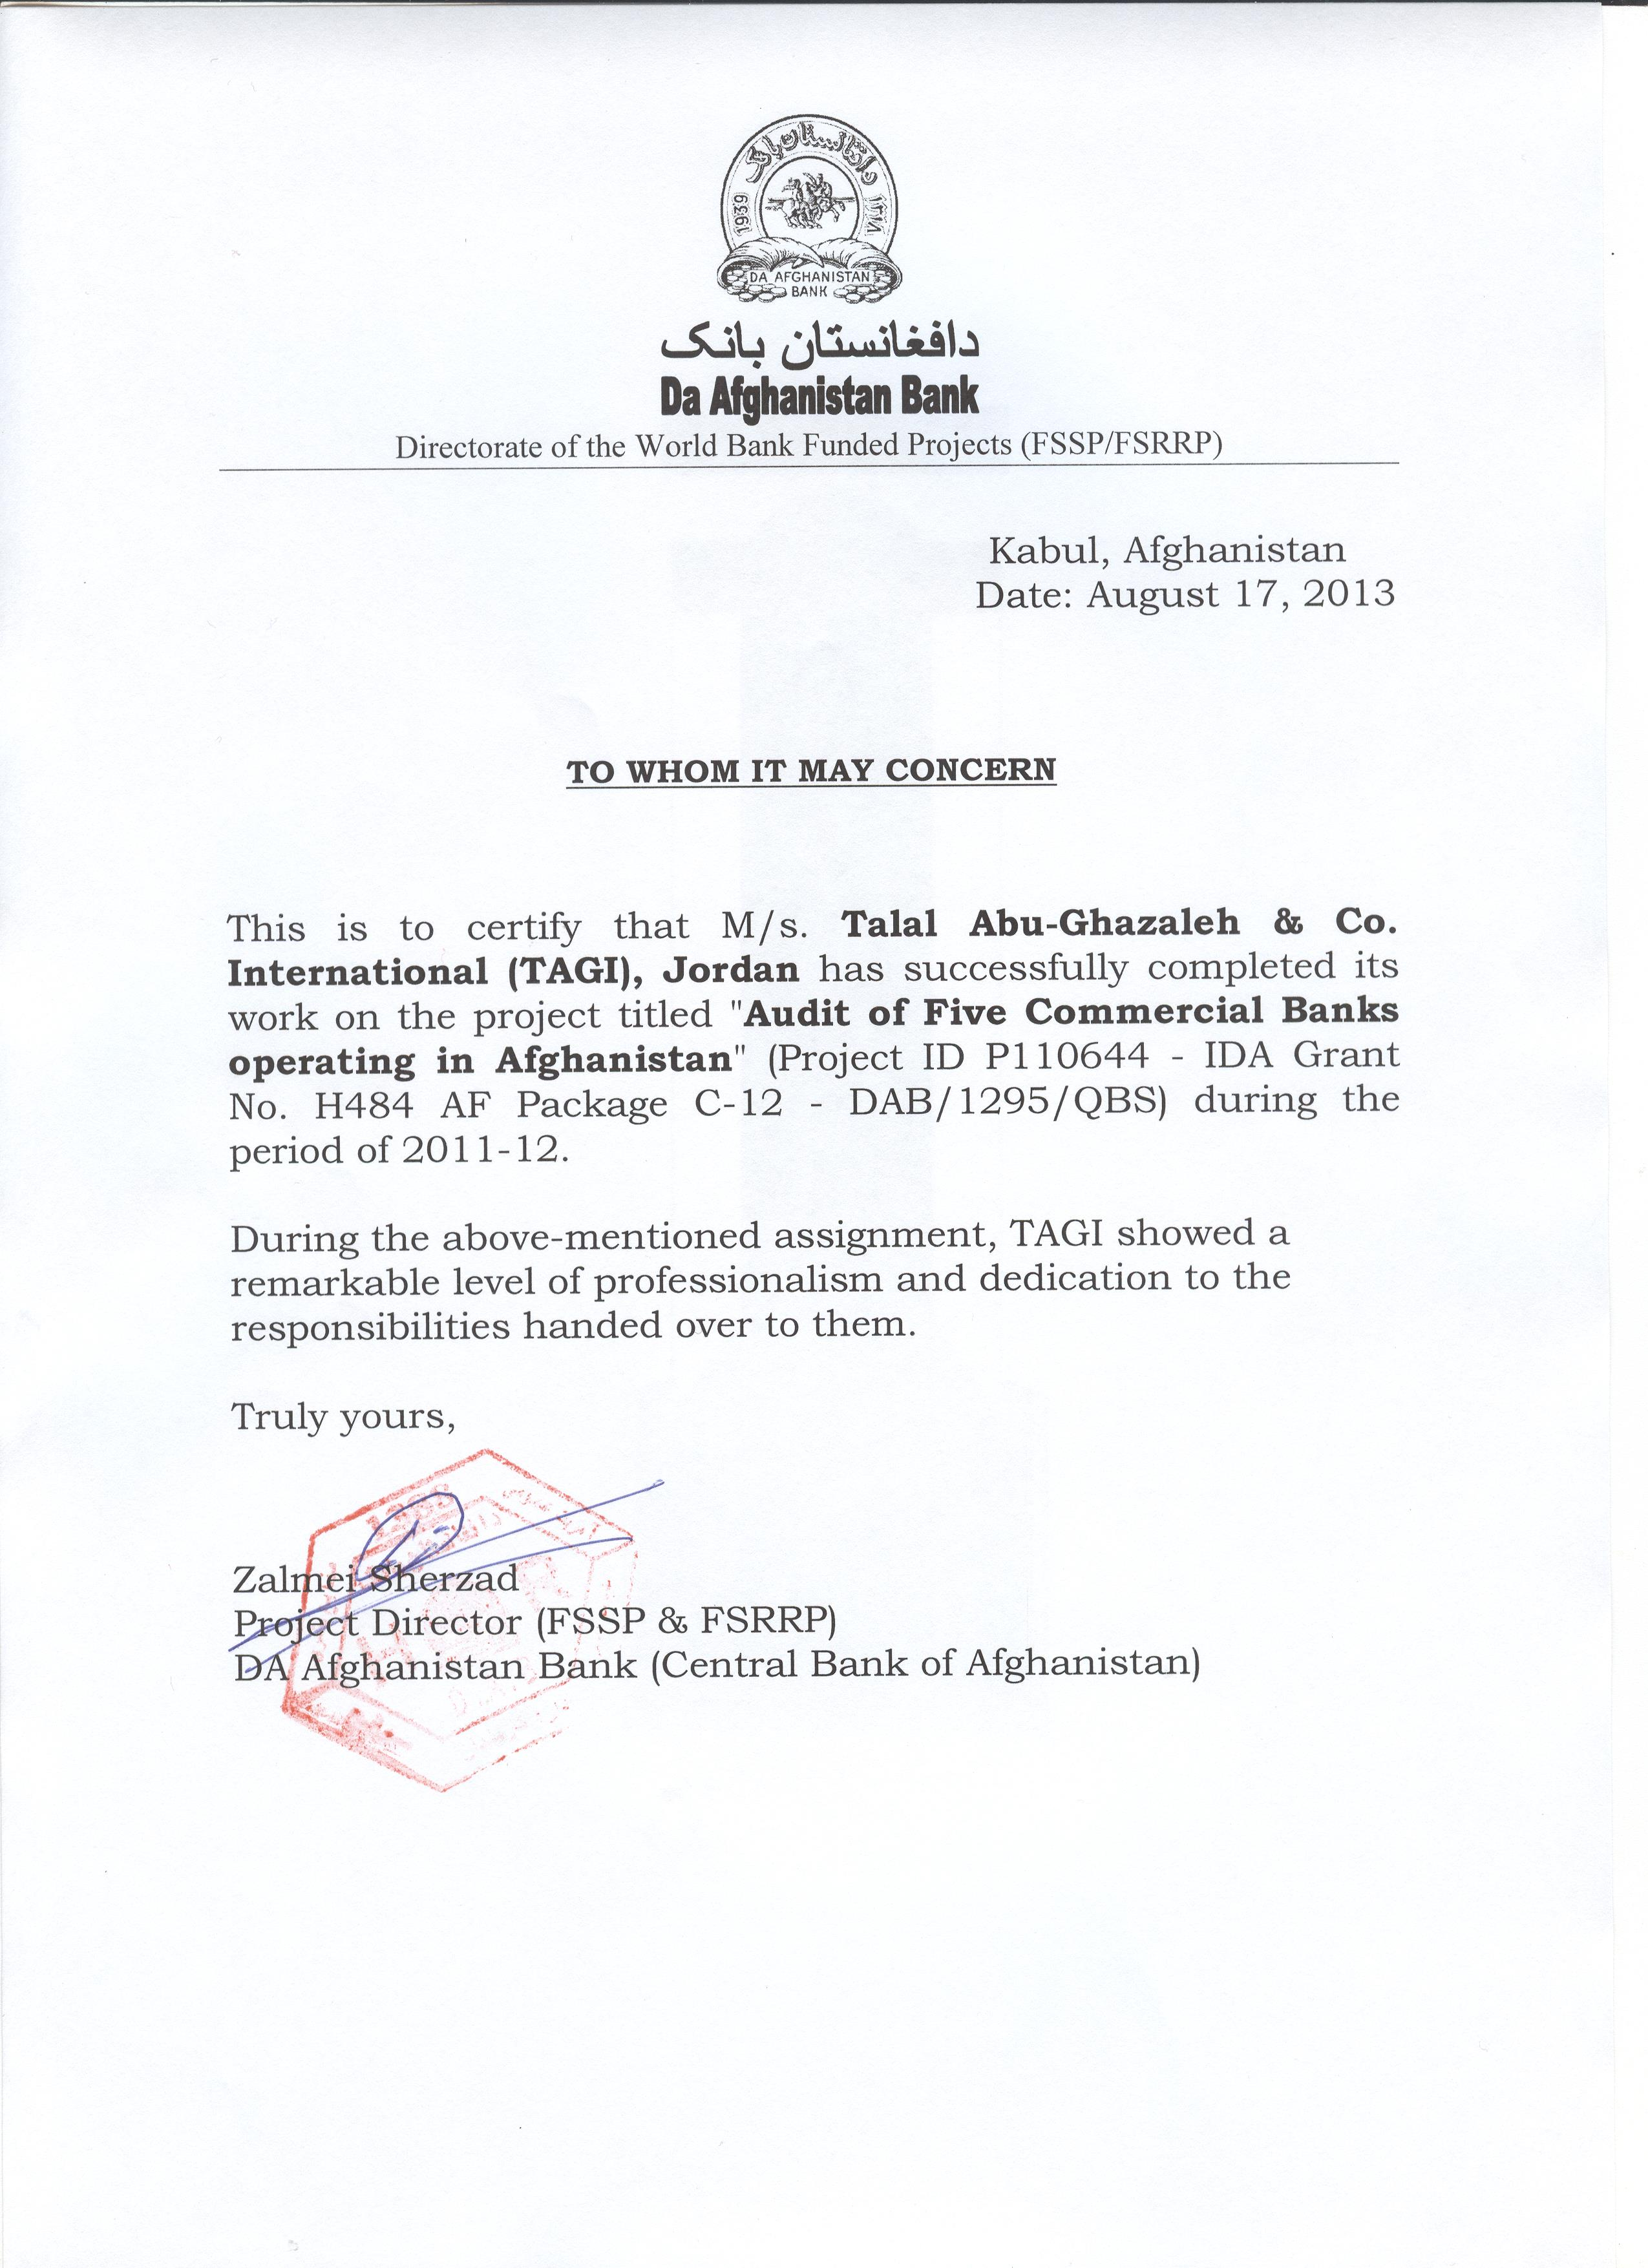 talal abu ghazaleh international press and publishing thanks letters a thank you letter from mr supachai panitchpakdi secretary general of unctad to he dr talal abu ghazaleh